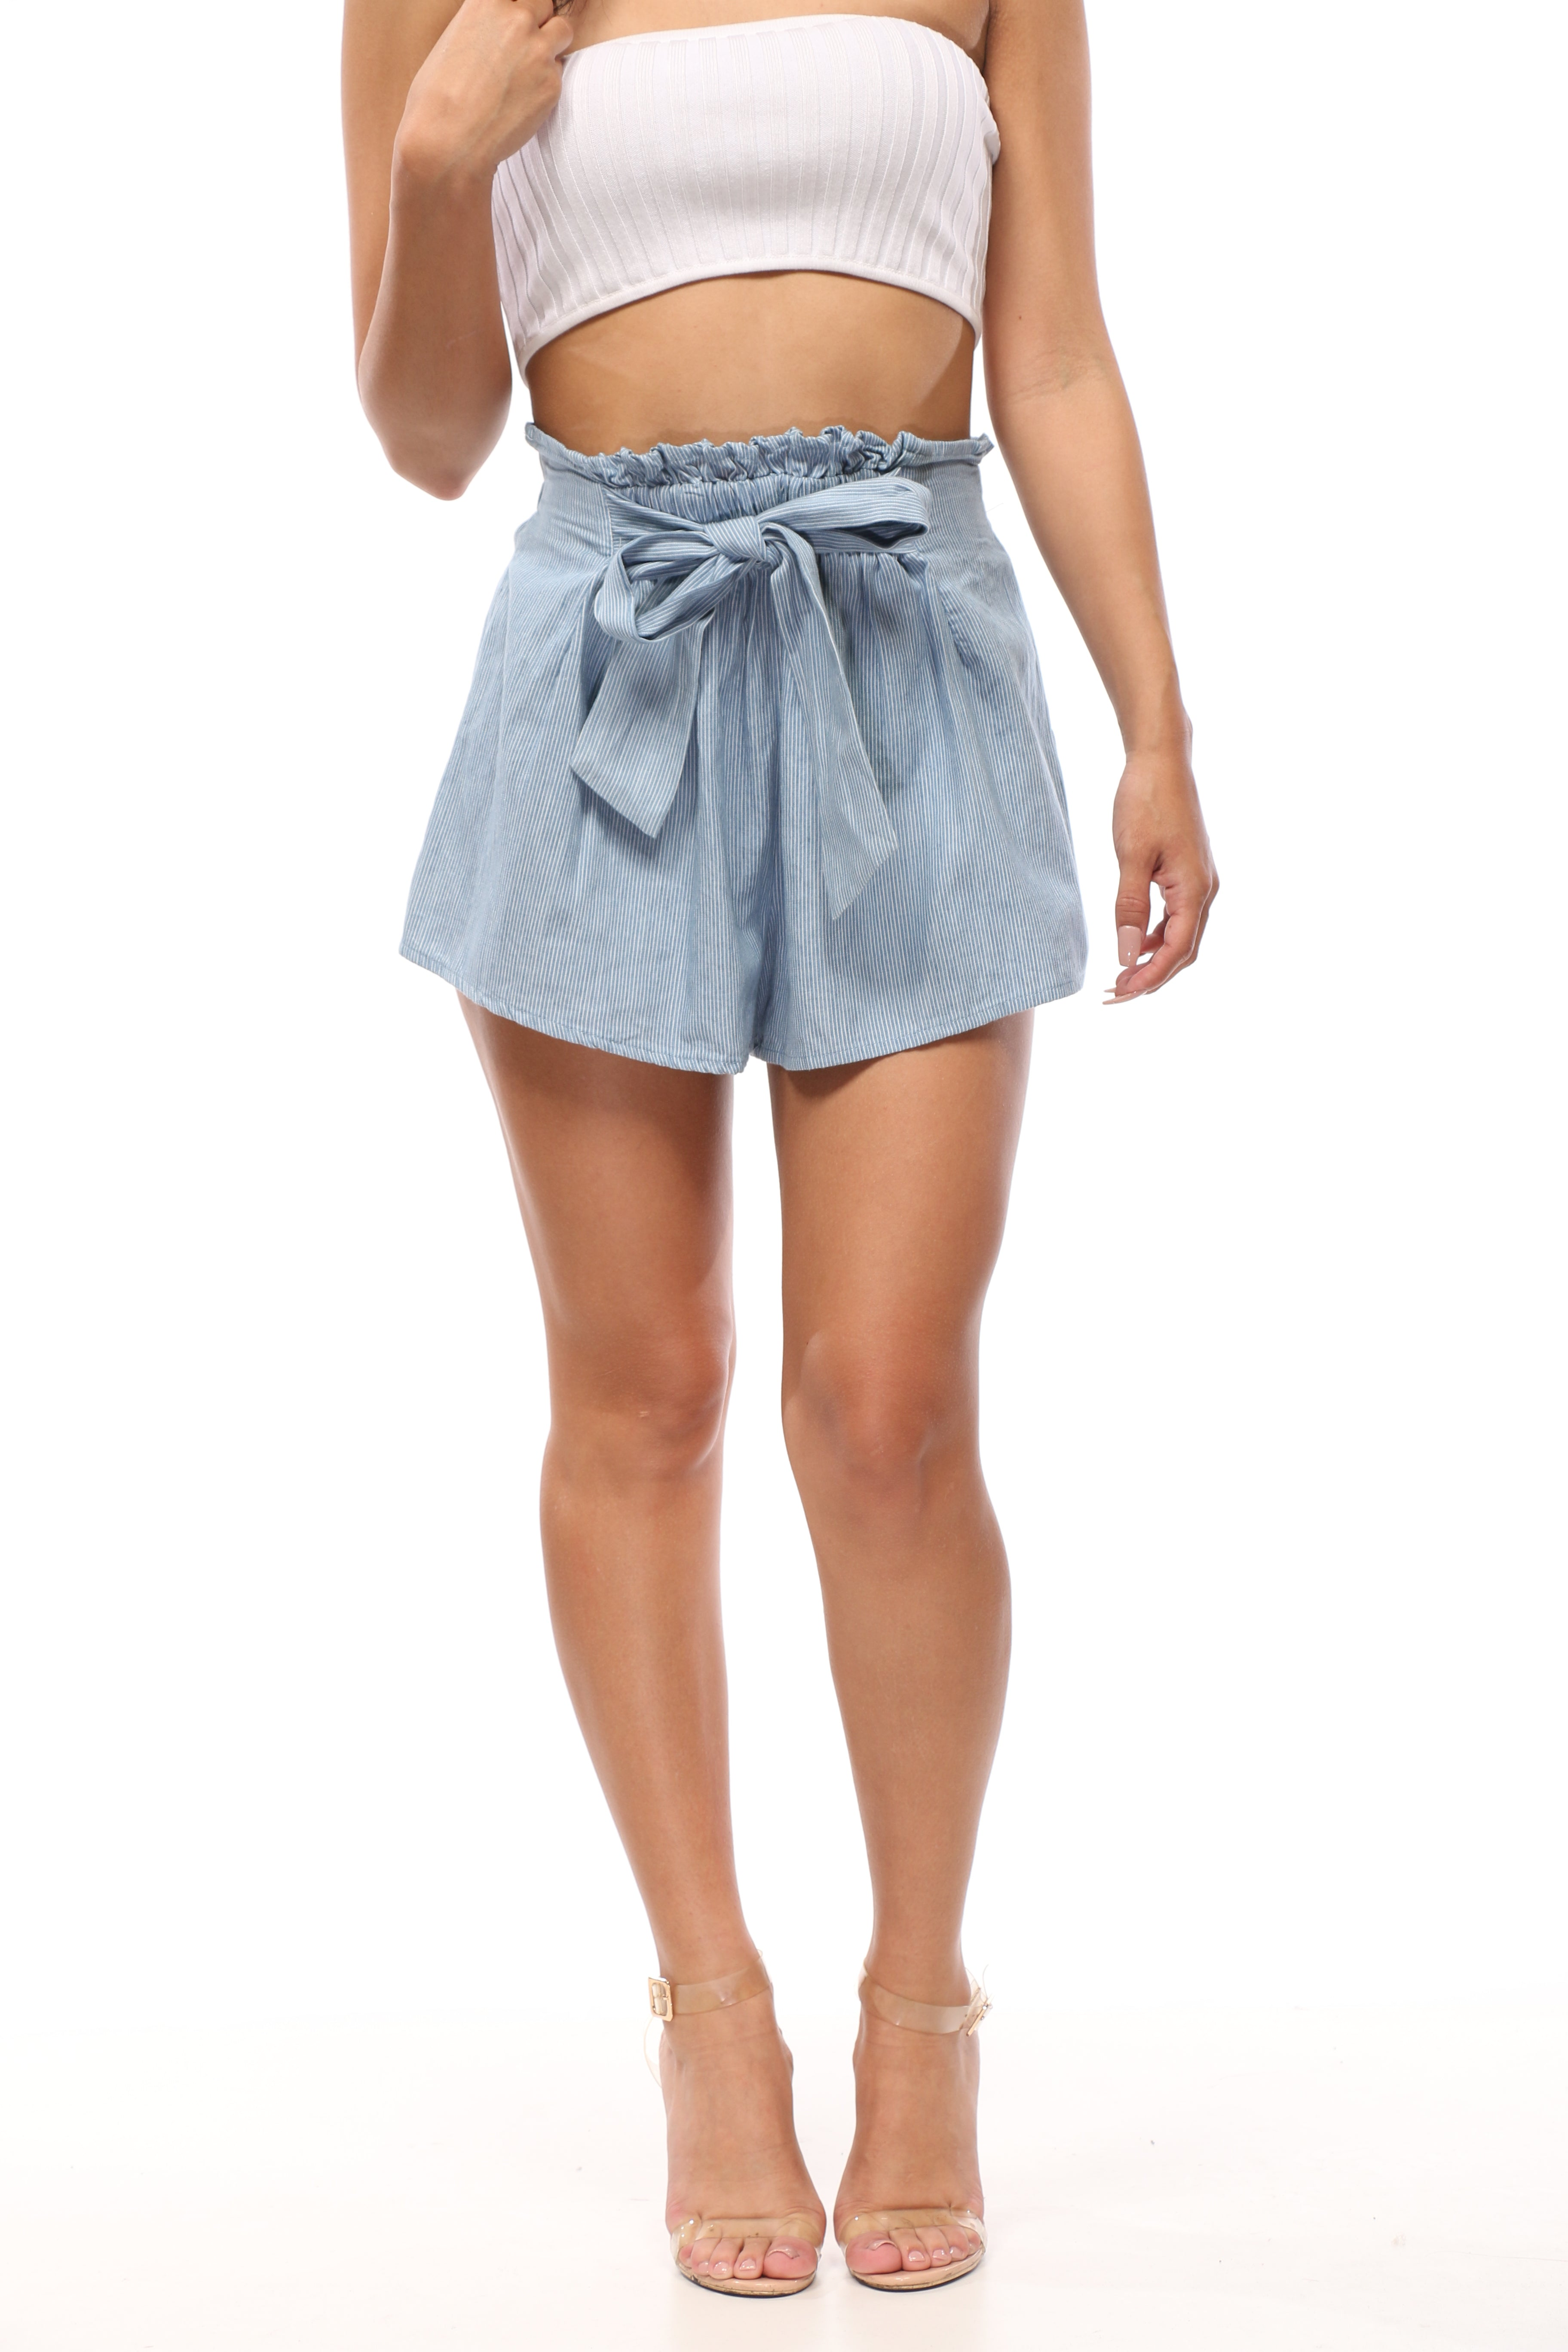 High Tied Paper Bag Shorts - OWLXFISH